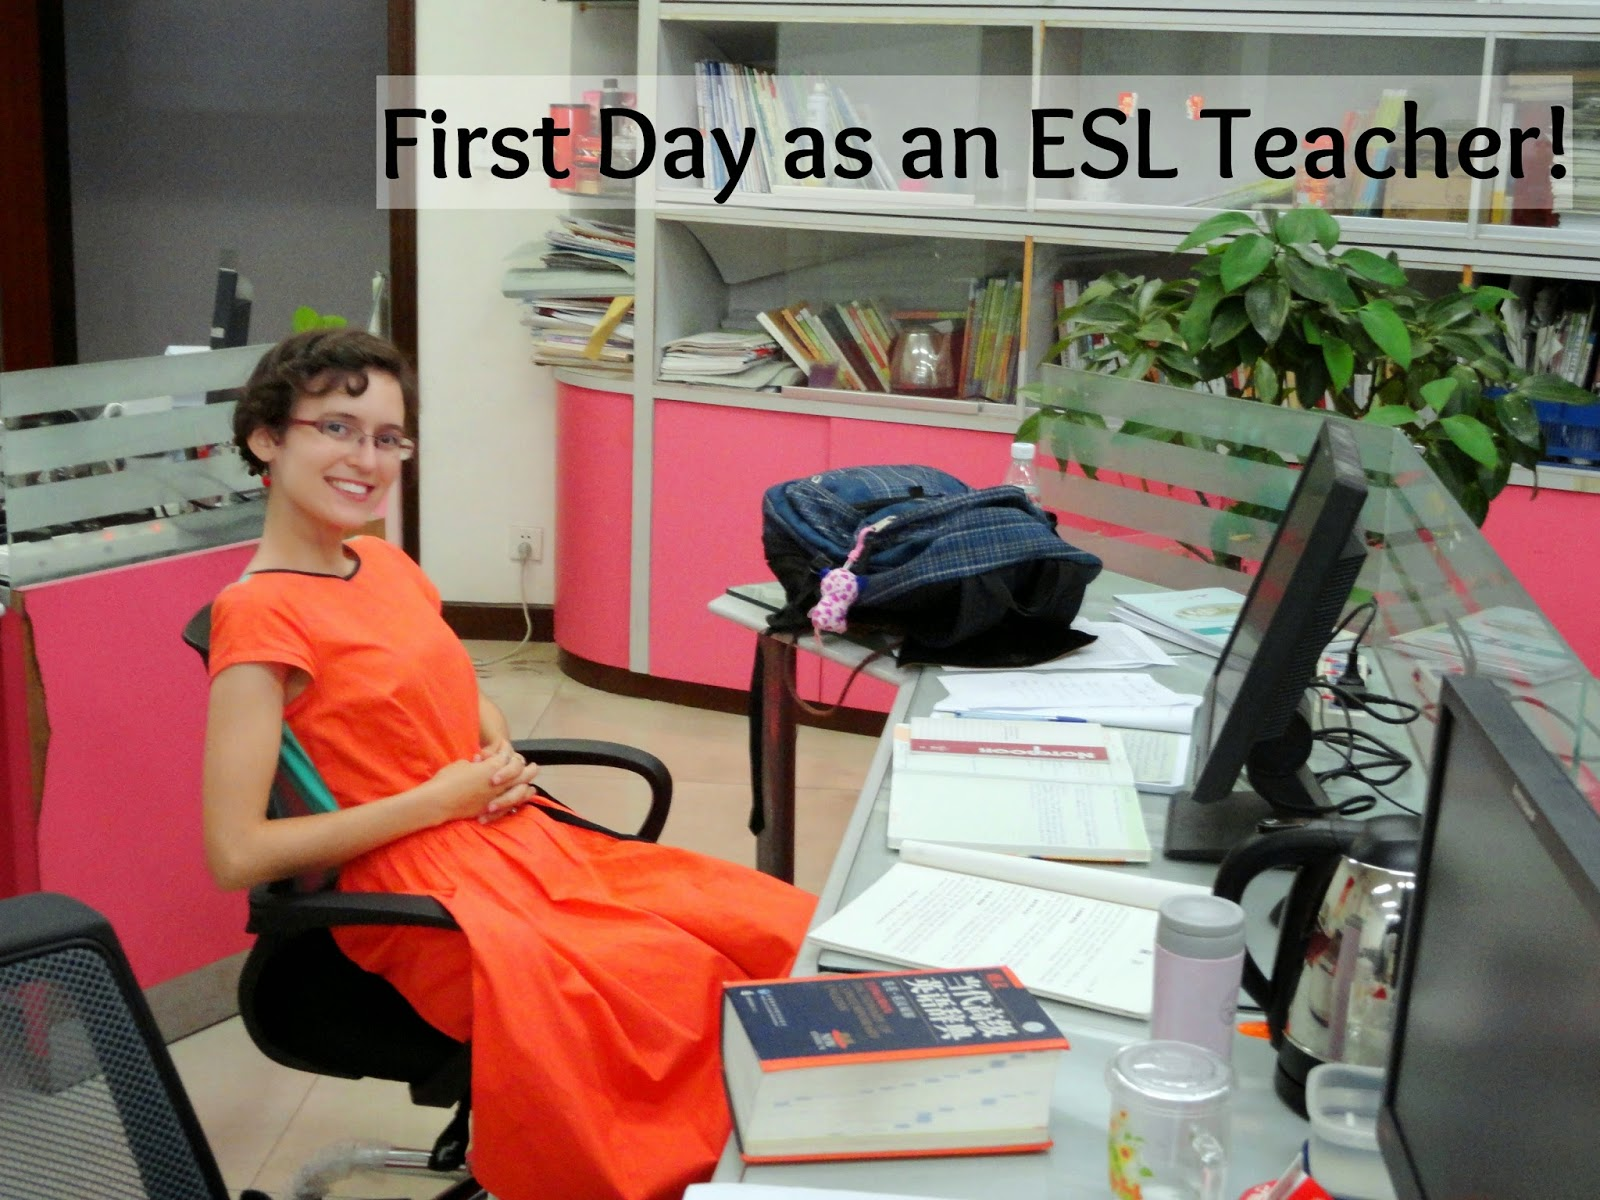 First Day as an ESL Teacher